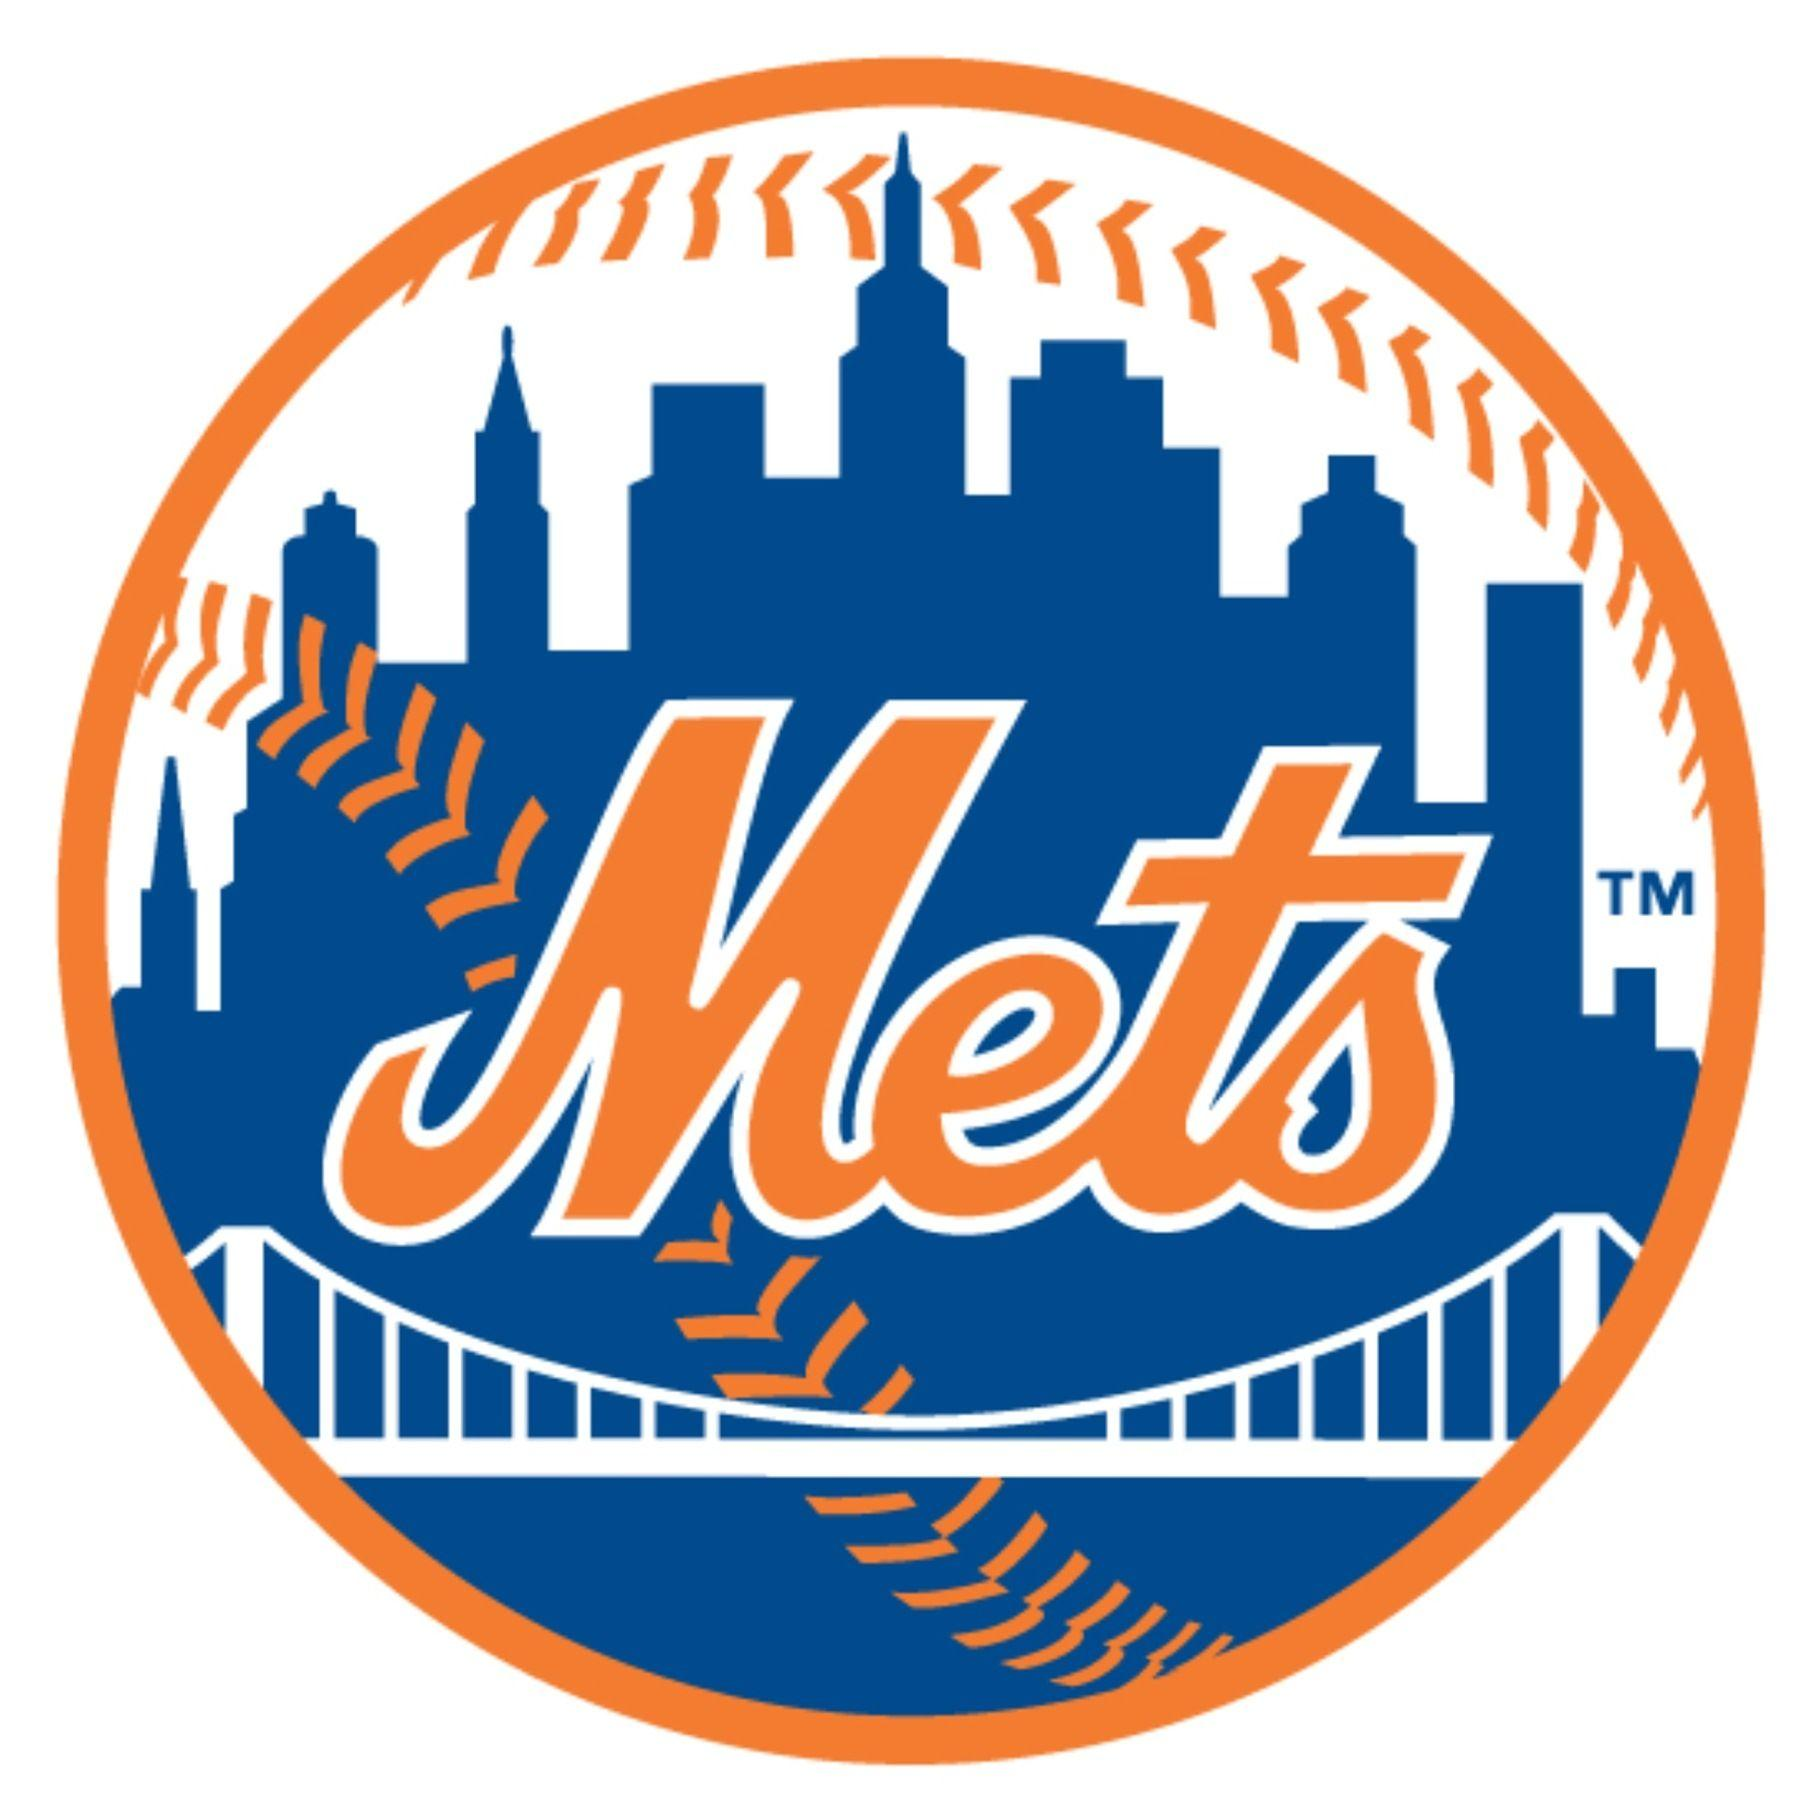 New York Mets Logo new york mets logo wallpaper – Logo Database